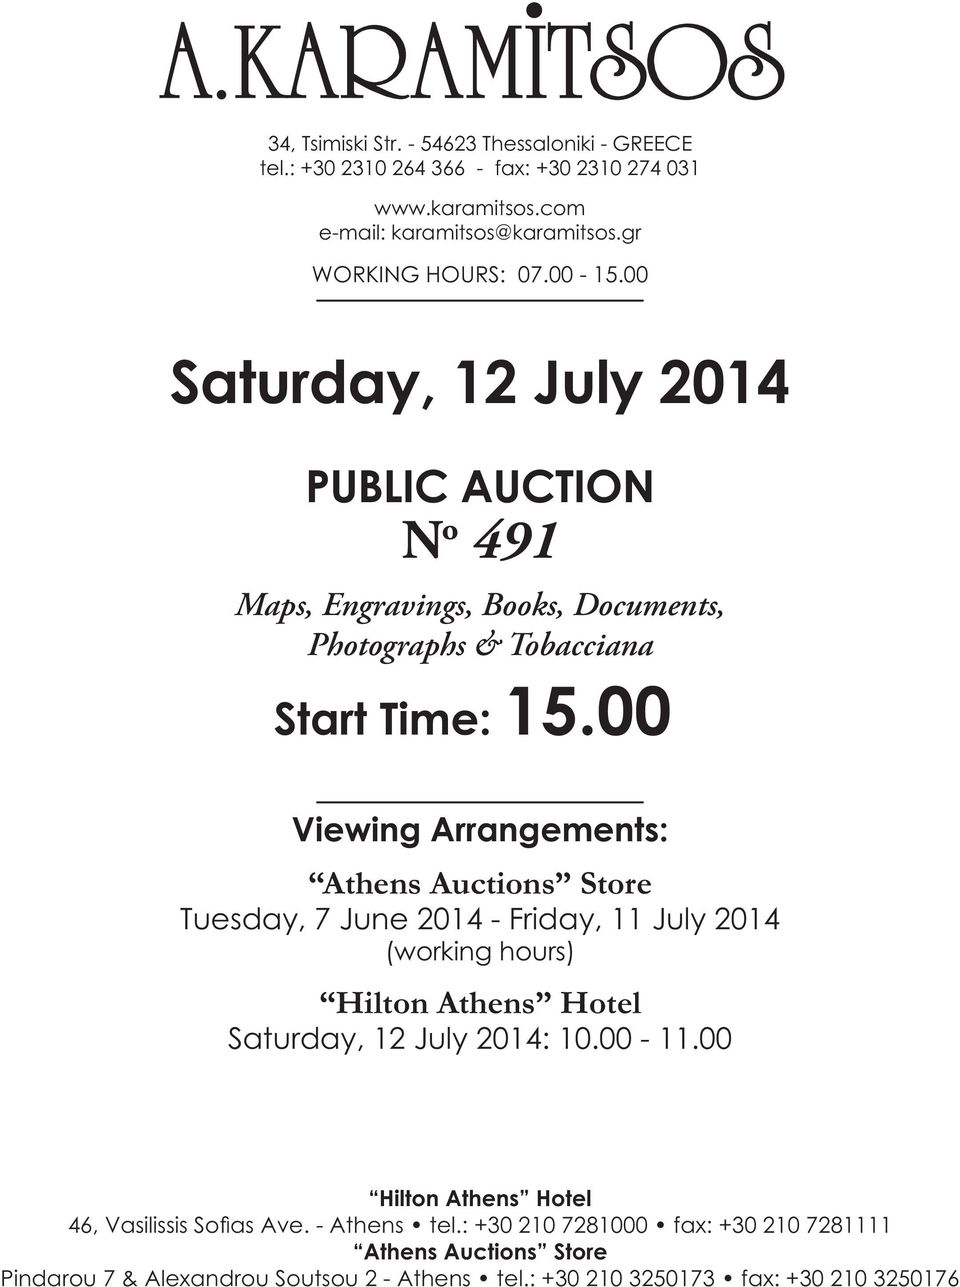 00 Viewing Arrangements: Athens Auctions Store Tuesday, 7 June 2014 - Friday, 11 July 2014 (working hours) Hilton Athens Hotel Saturday, 12 July 2014: 10.00-11.